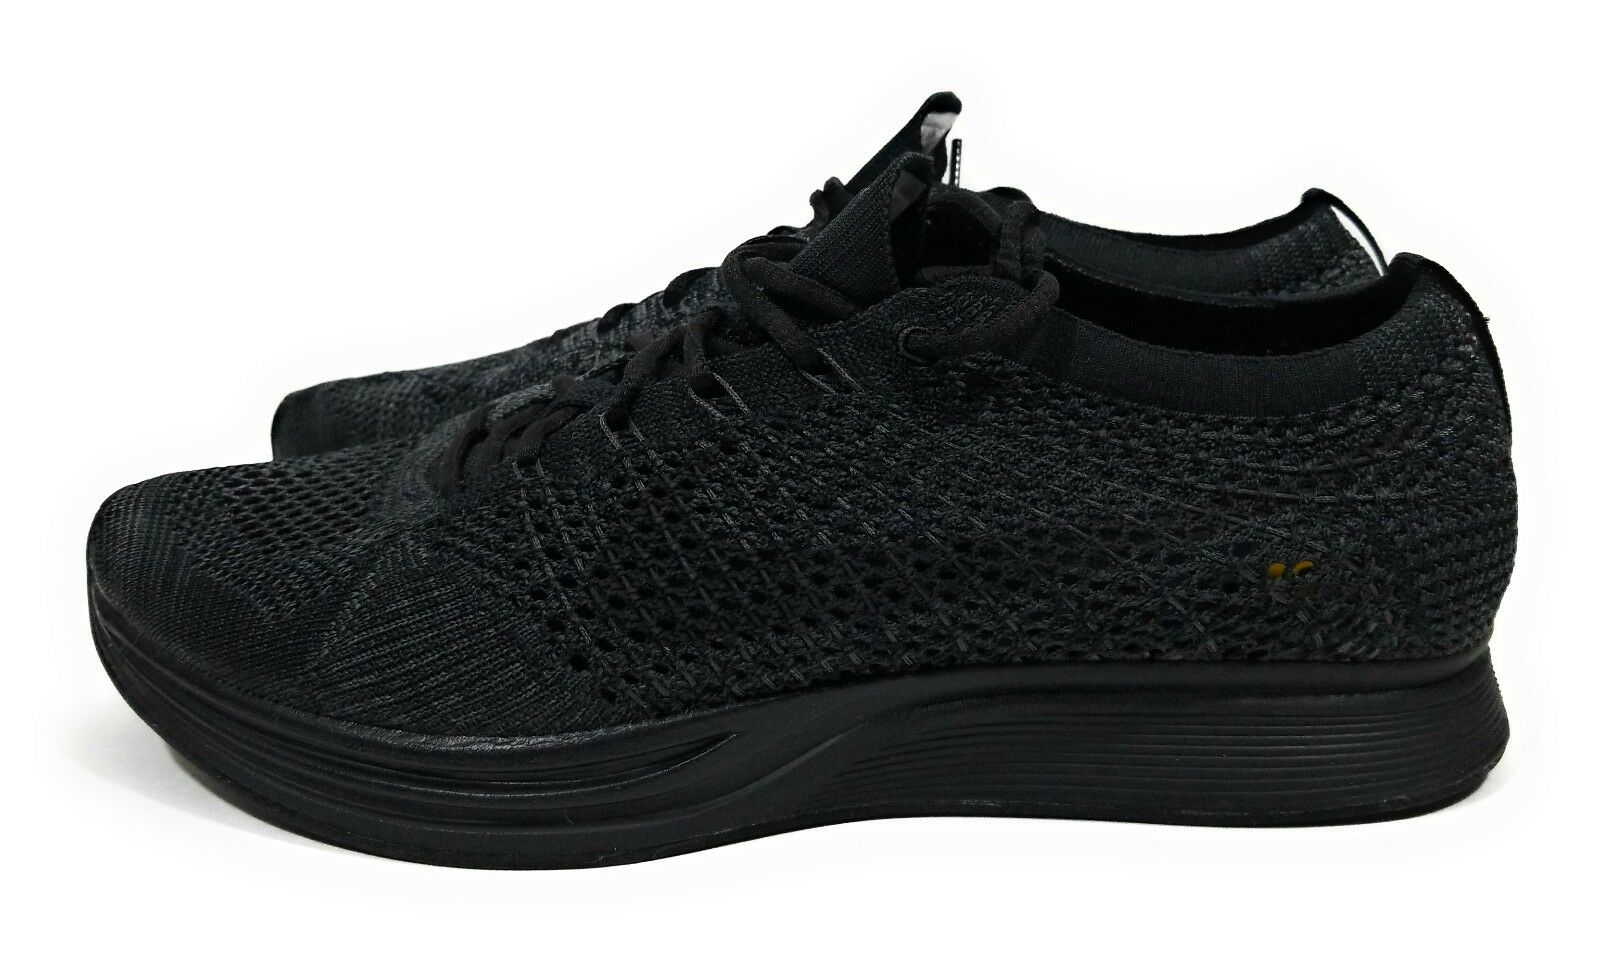 Nike Flyknit Racer Running shoes Black Anthracite Anthracite Anthracite Mens Size 7 Womens Size 8.5 11e601